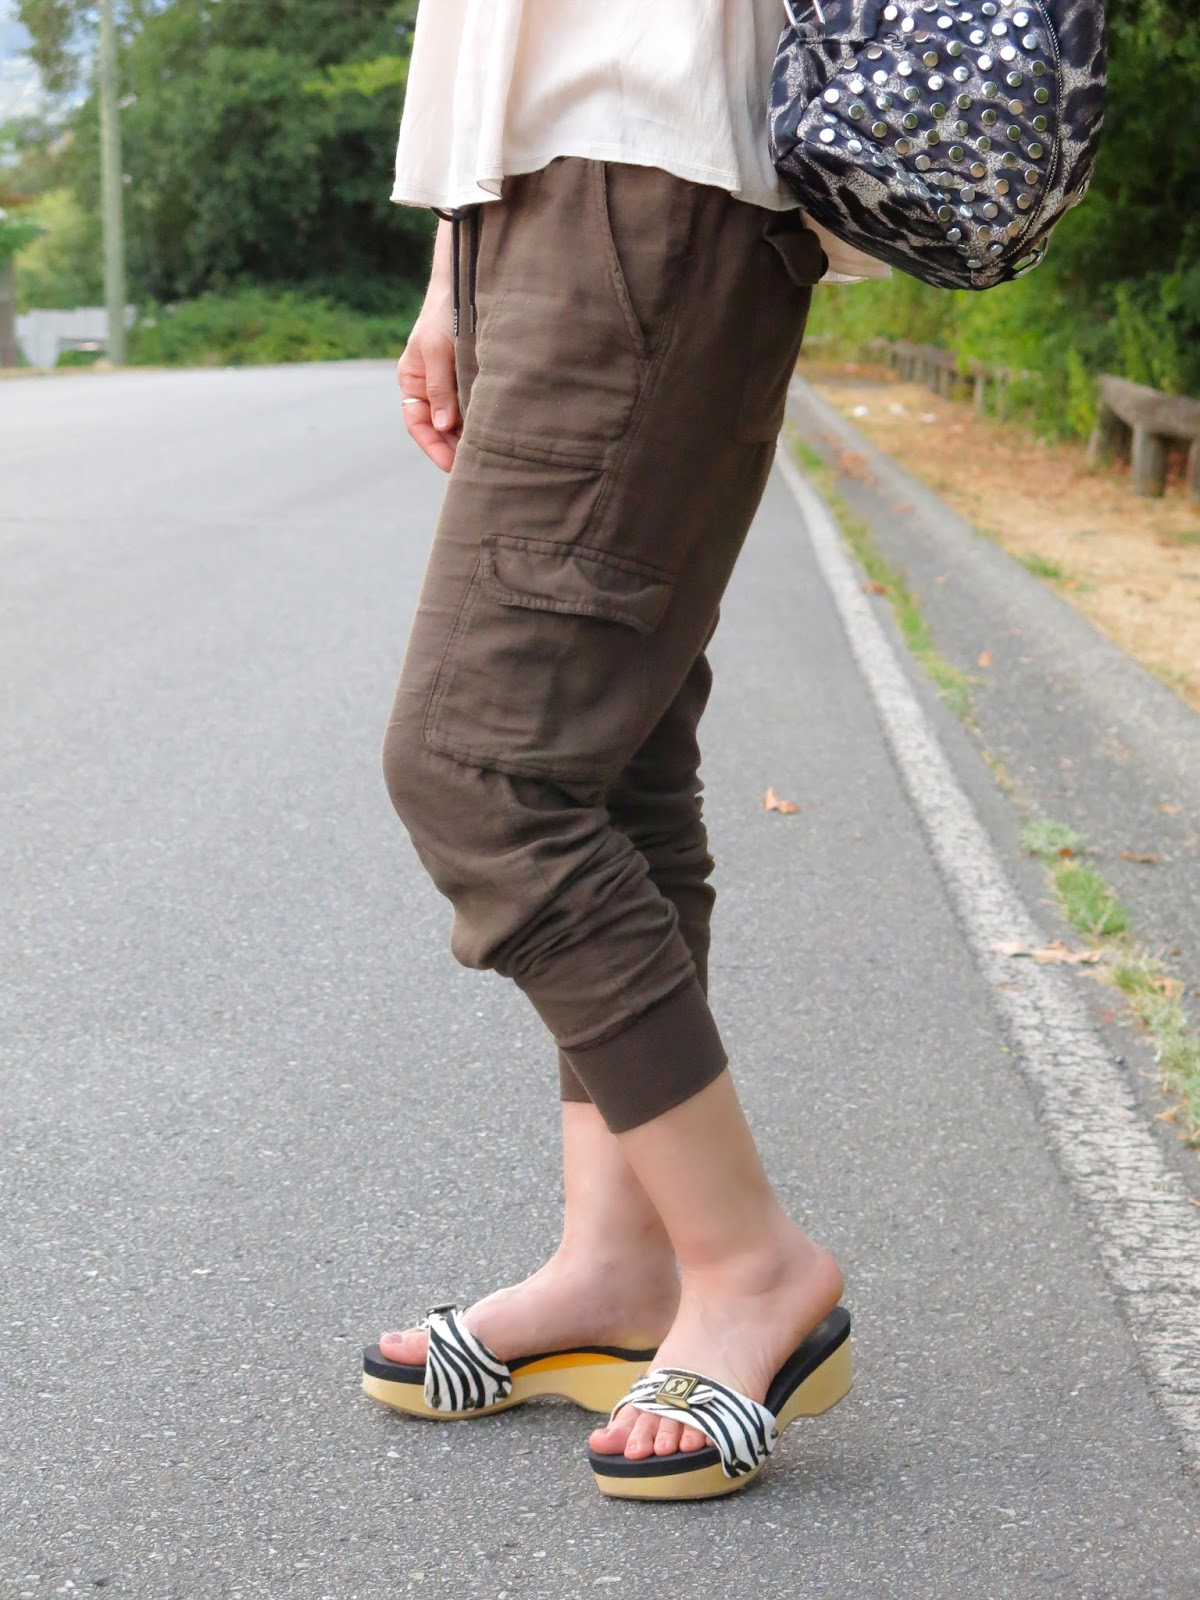 styling slouchy cargo pants with a Zara top, zebra-striped slides, and a leopard backpack